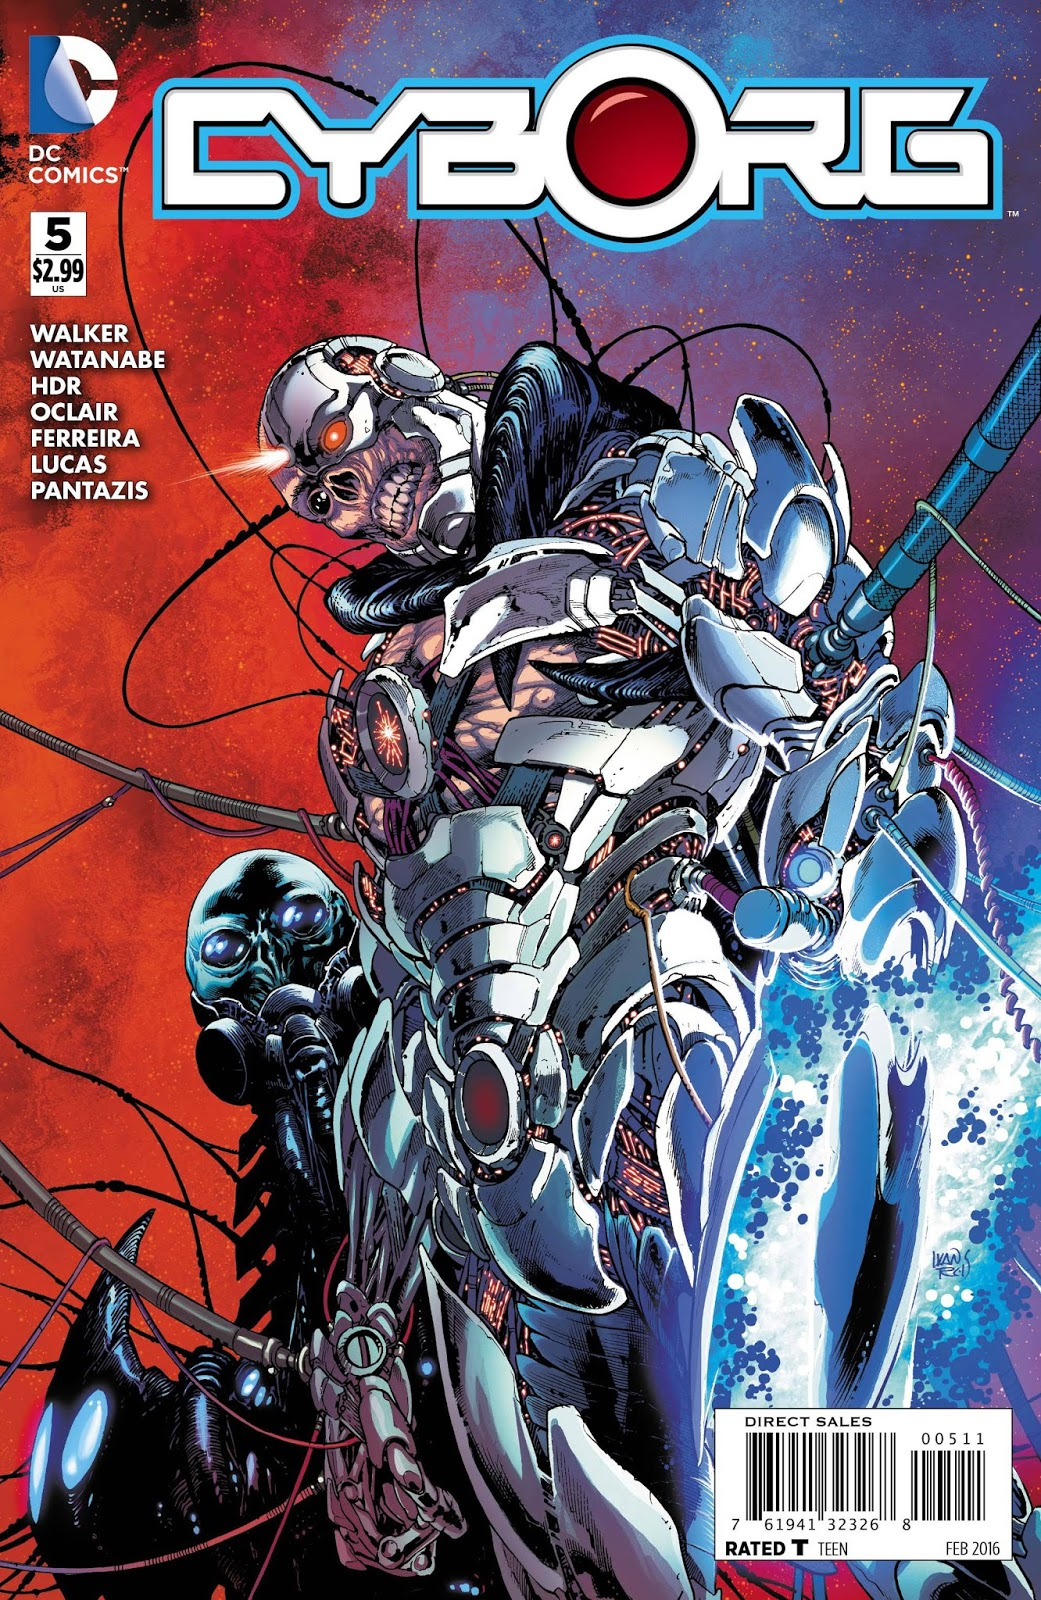 Art By Ivan Reis Felipe Watanabe Daniel HDR Albert Oclair Julio Ferreira Cover And Joe Prado Cyborg Has The Technology Alien